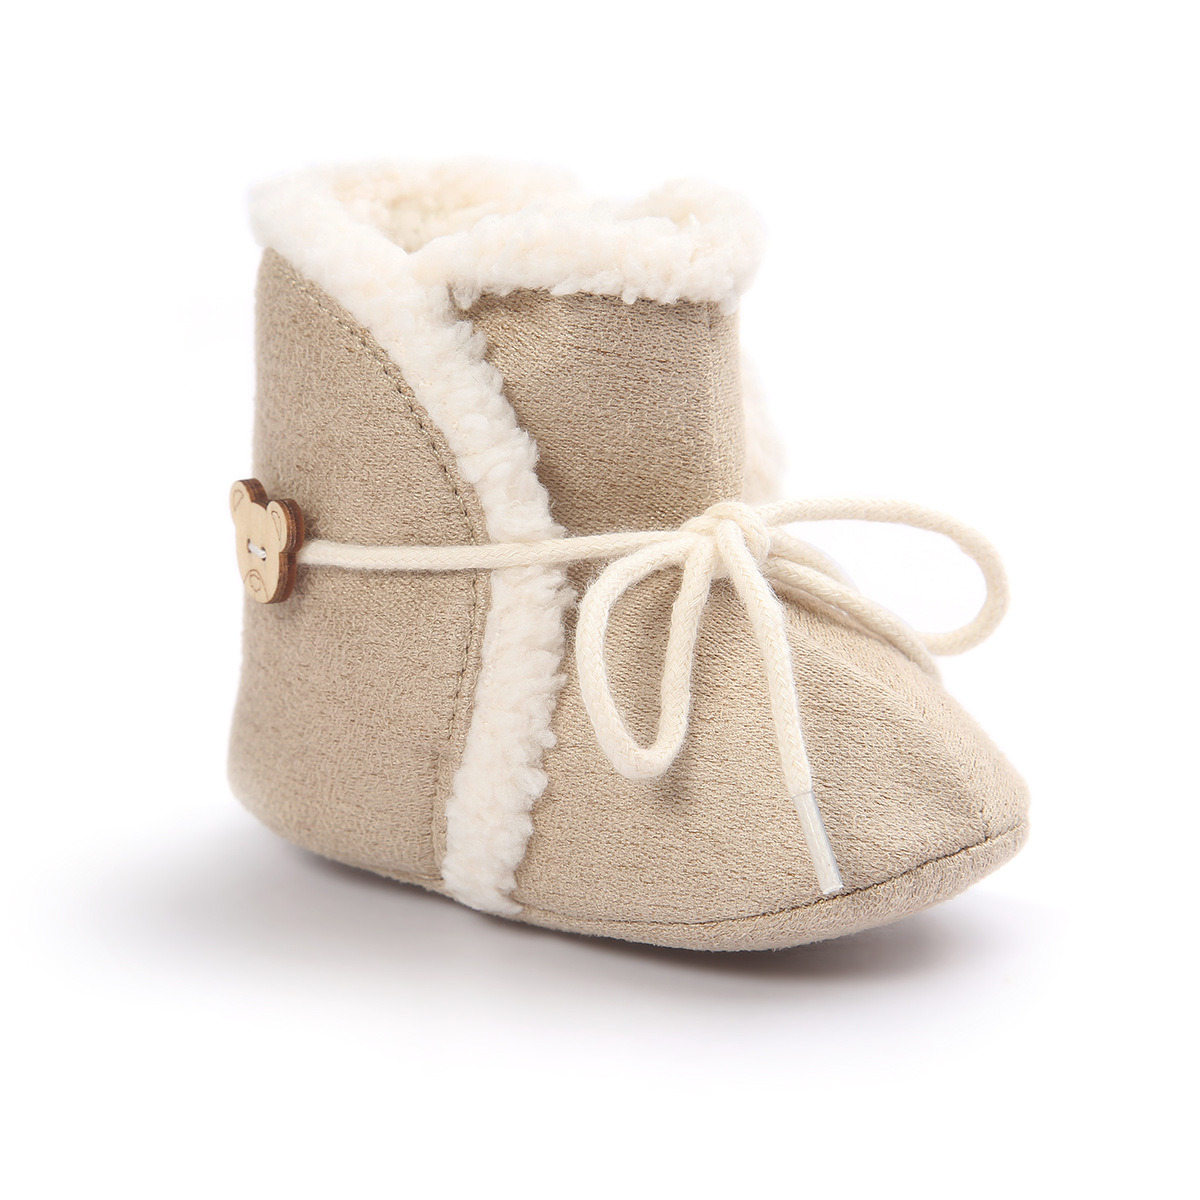 Baby Toddler Infant Girl Boy Snow Boots Shoes Rubber Sole Prewalker Crib Sneaker